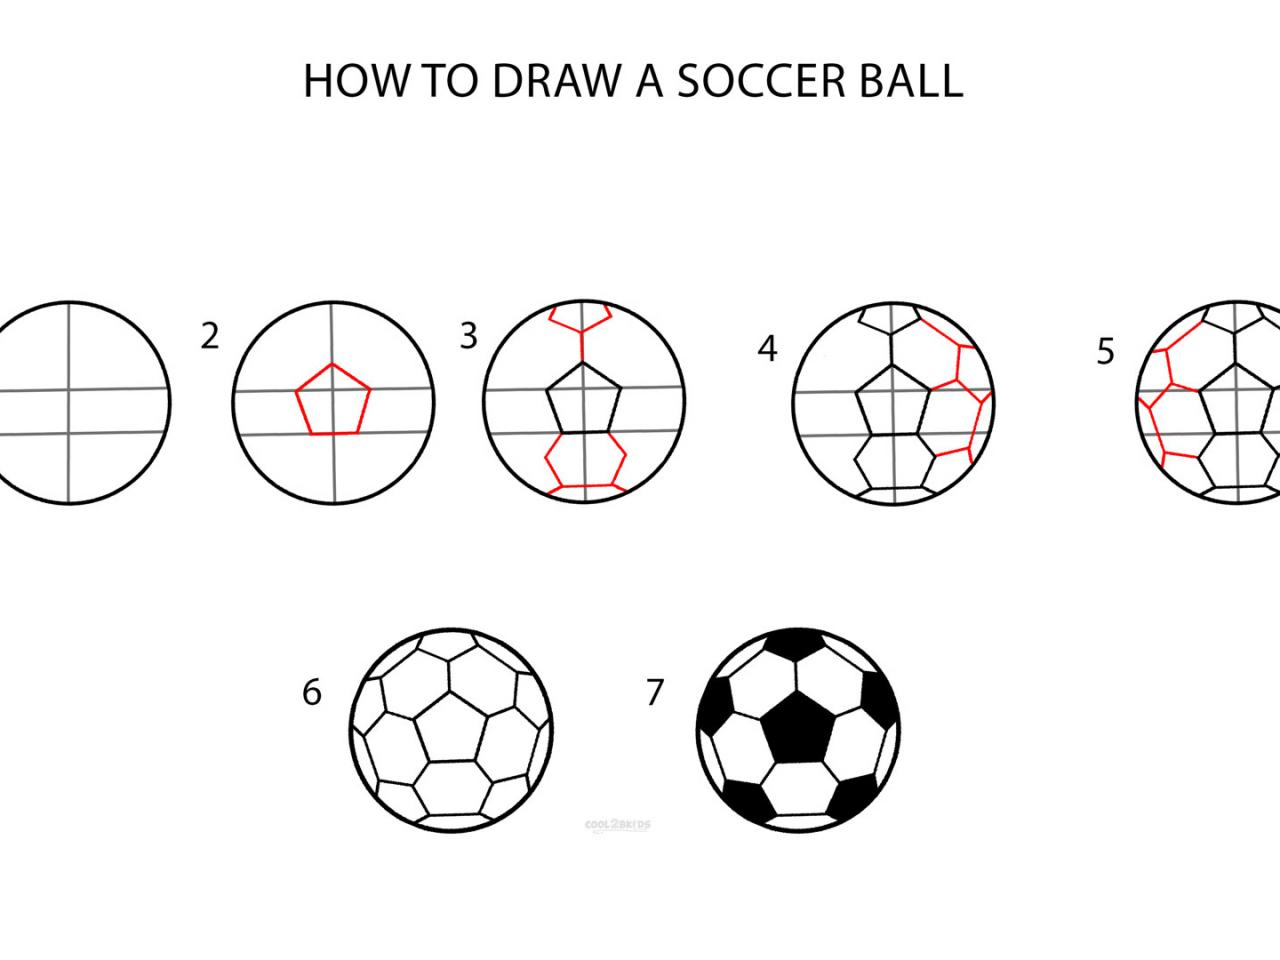 Pictures of Soccer Balls to Draw | HD Wallpapers for Free